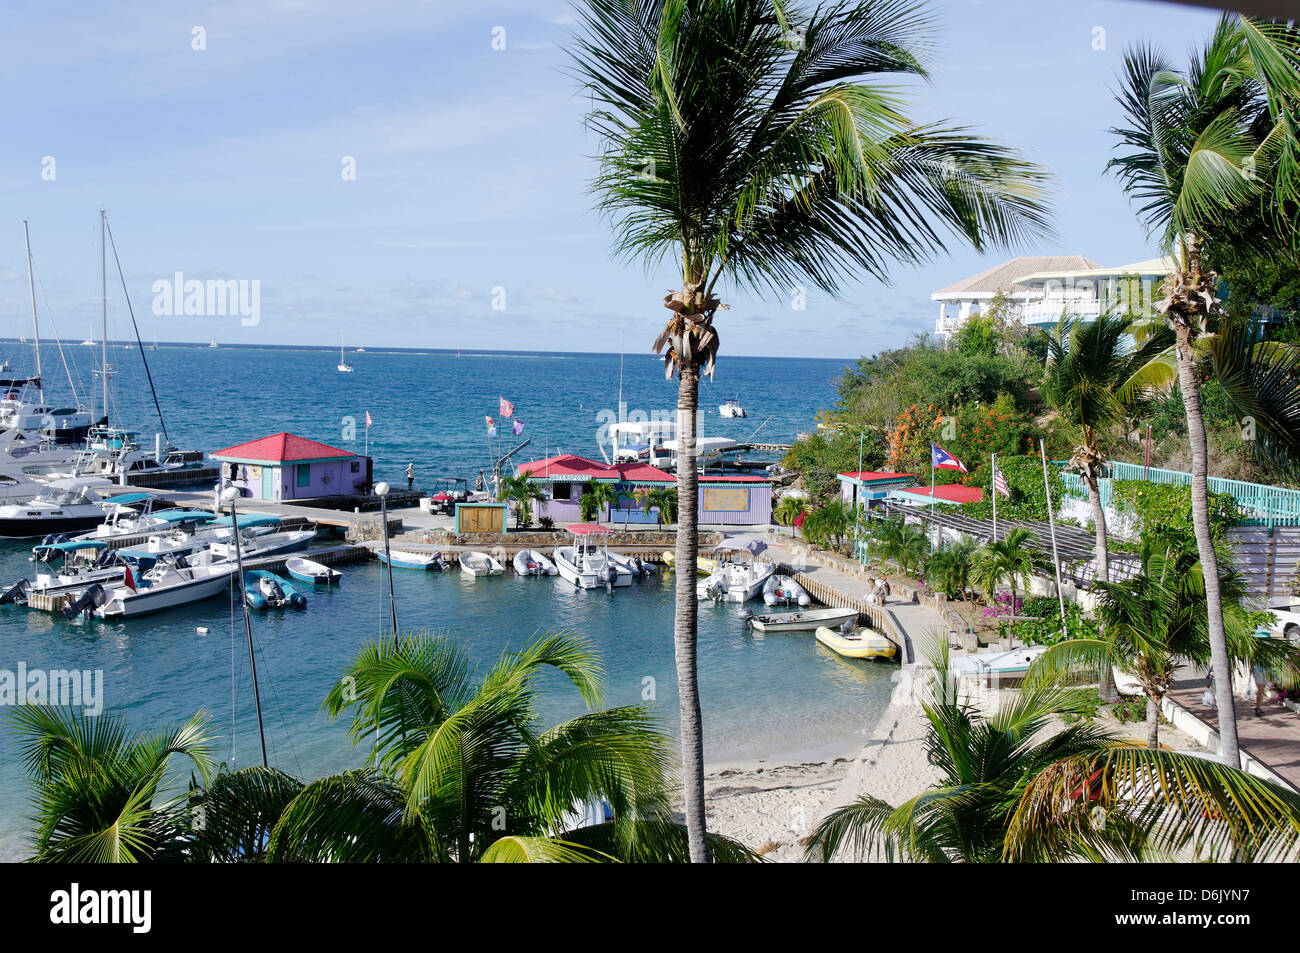 The Leverick Bay Resort and Marina, Virgin Gorda, British Virgin Islands, West Indies, Caribbean, Central America - Stock Image